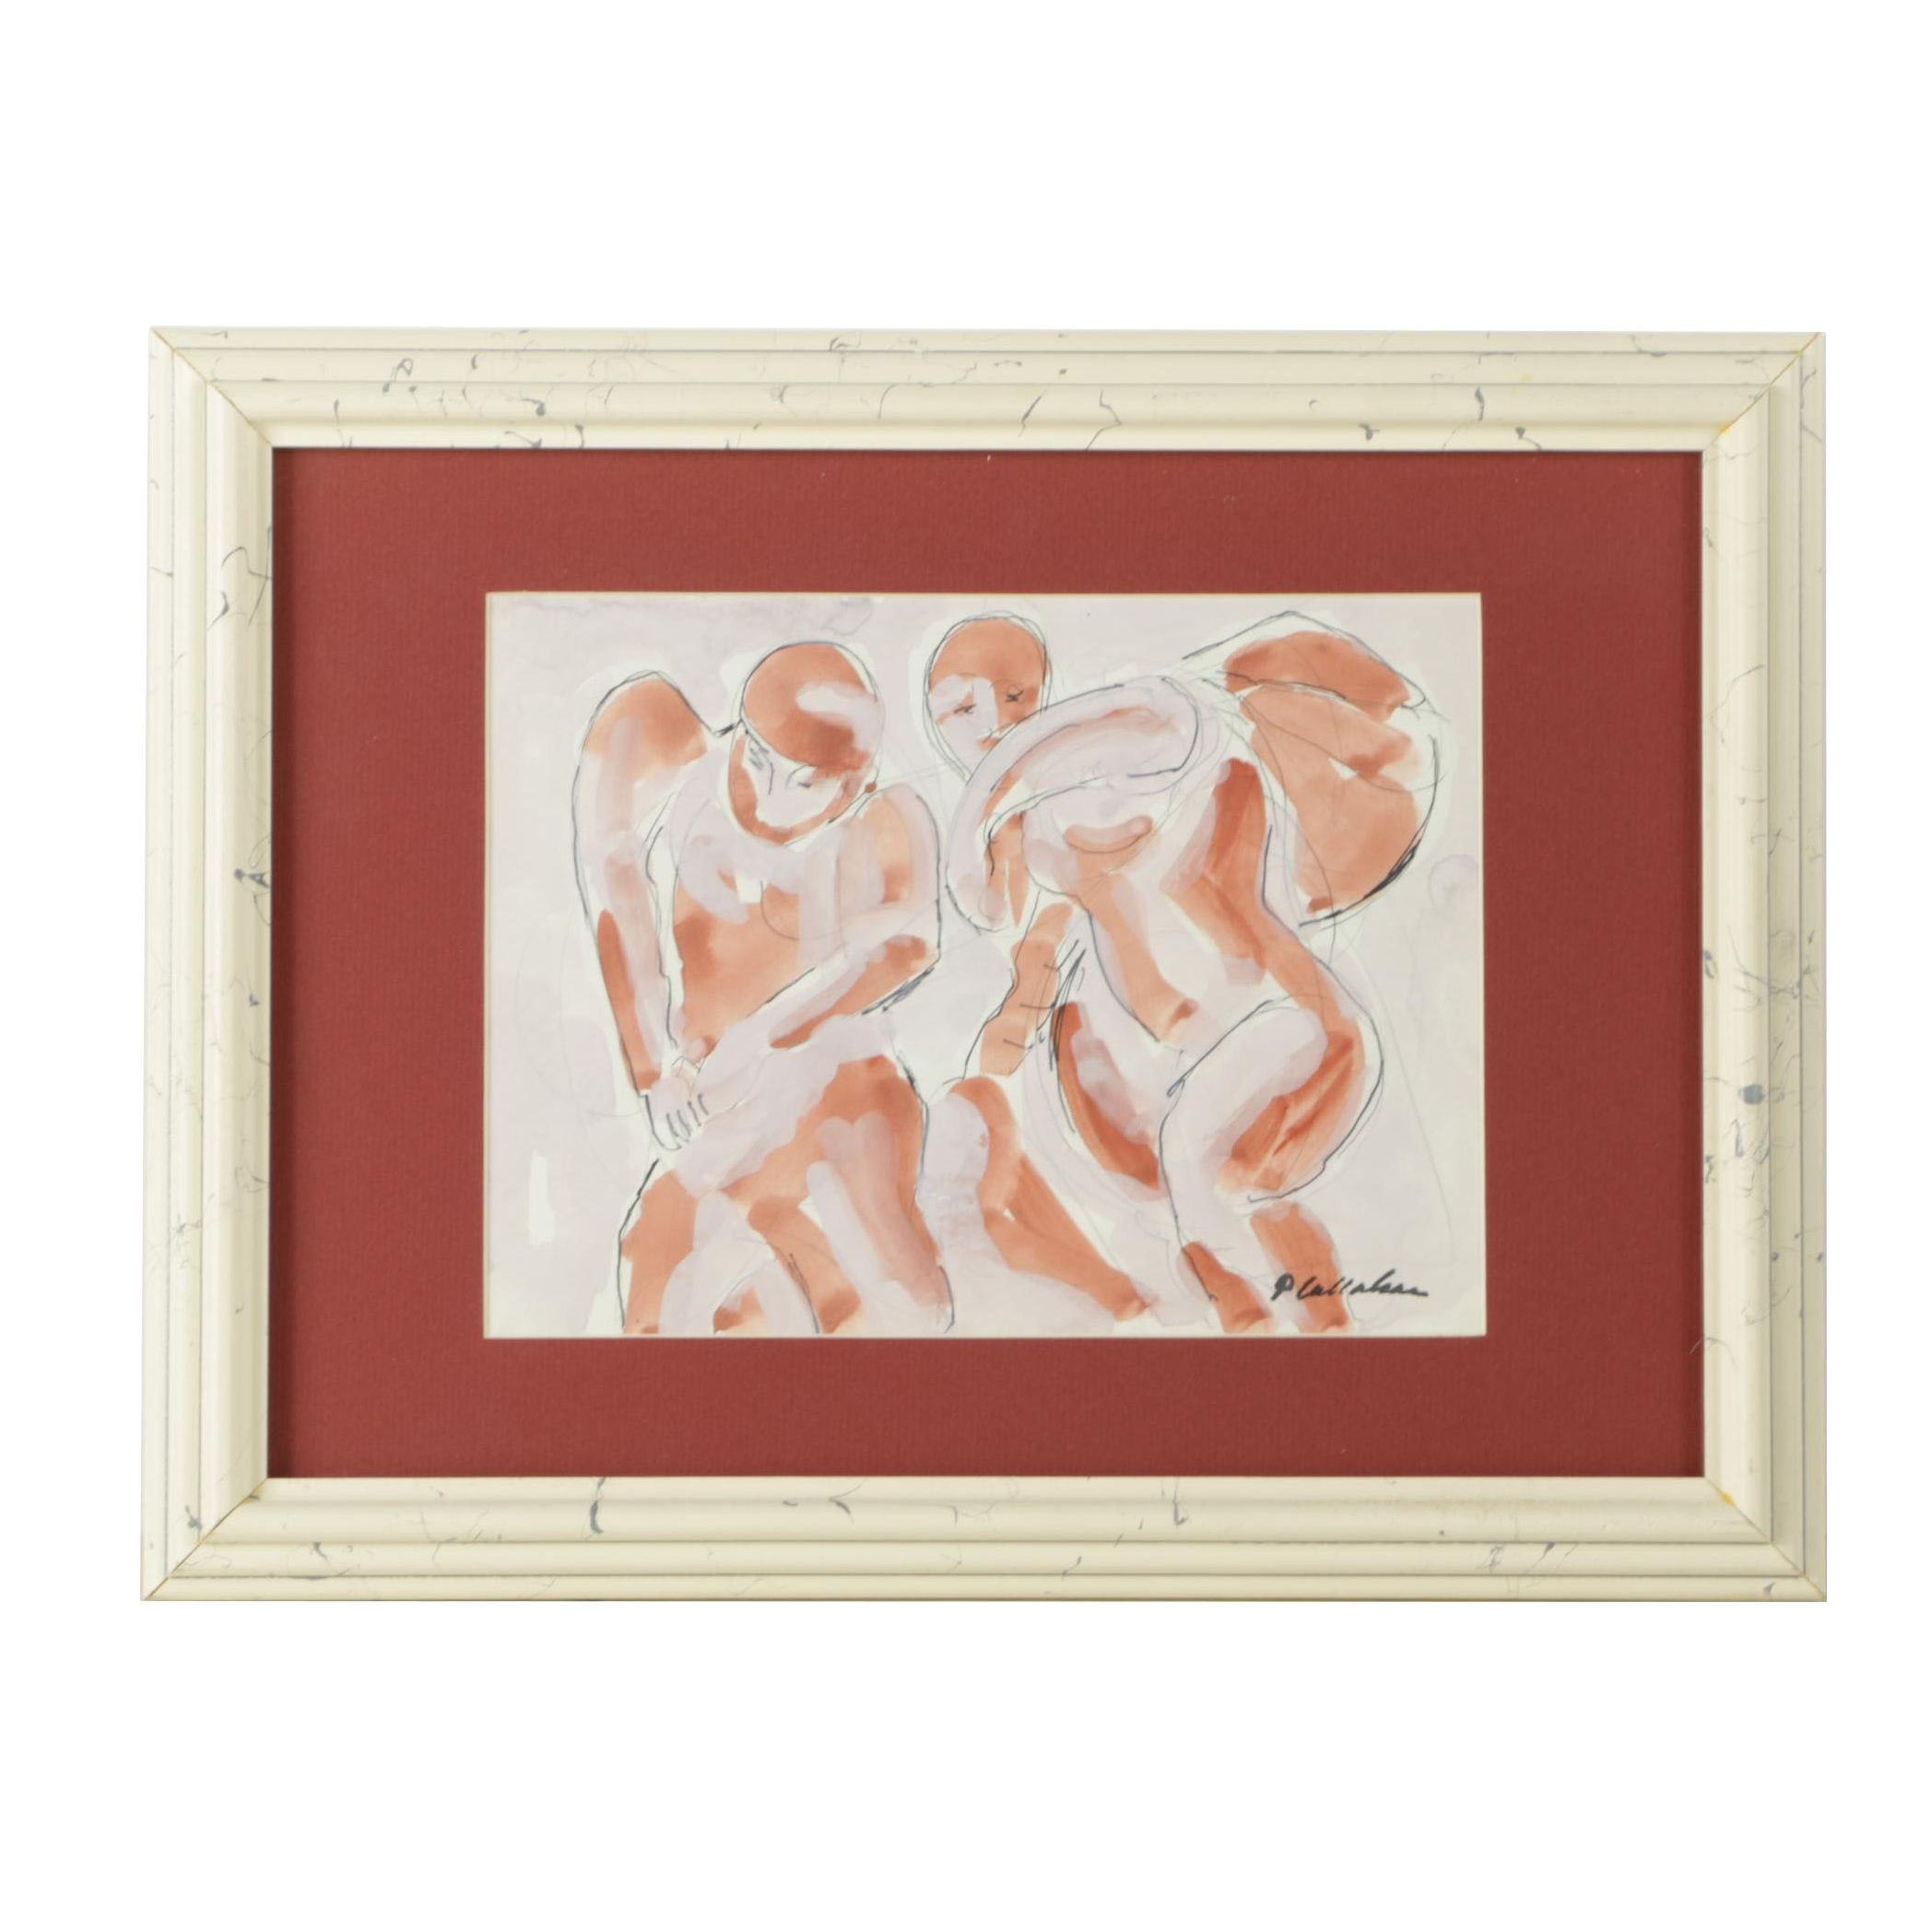 Phillip Callahan Mixed Media Painting of Figures